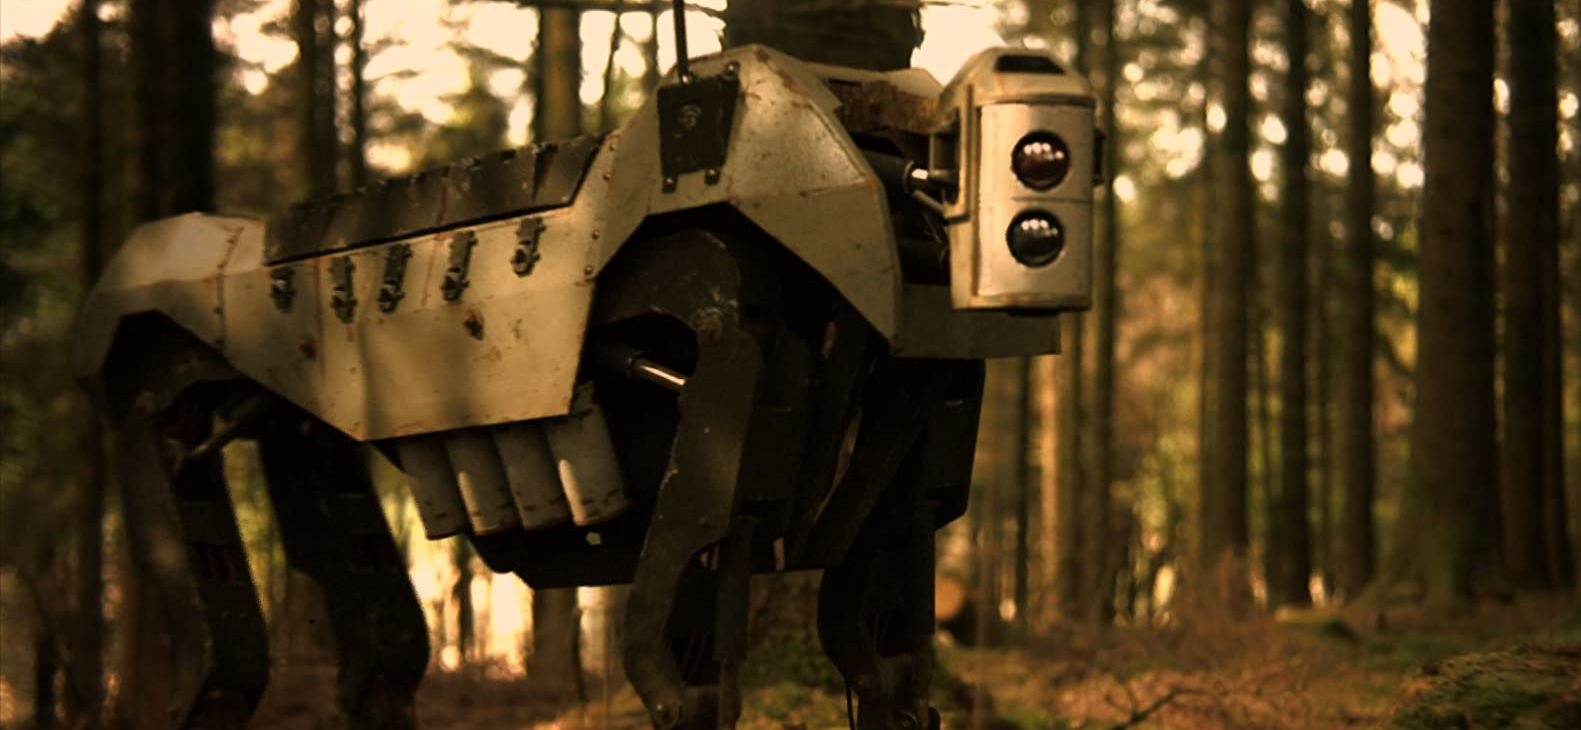 Robot dogs in Robot World (2015)